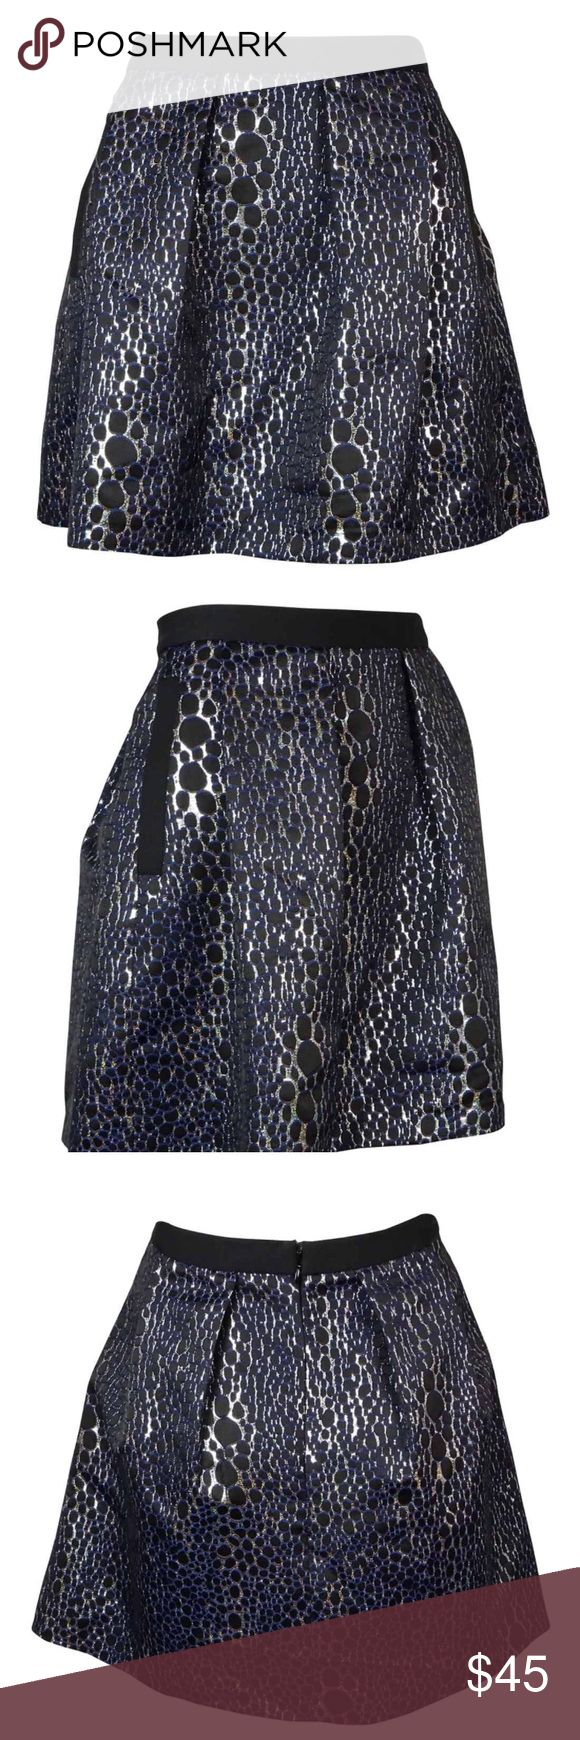 French connection women's sparkle A-line skirt This skirt features no lining, concealed back zipper, metallic animal print design, a-line style and polyester fabric blend. Dry clean Not lined - 67% Polyester/20% Acrylic/13% Metallized Fibers; 49% Cotton/48% Polyester/3% Elastane Concealed back zipper Metallic animal print A-line style Polyester fabric blend French Connection Skirts A-Line or Full